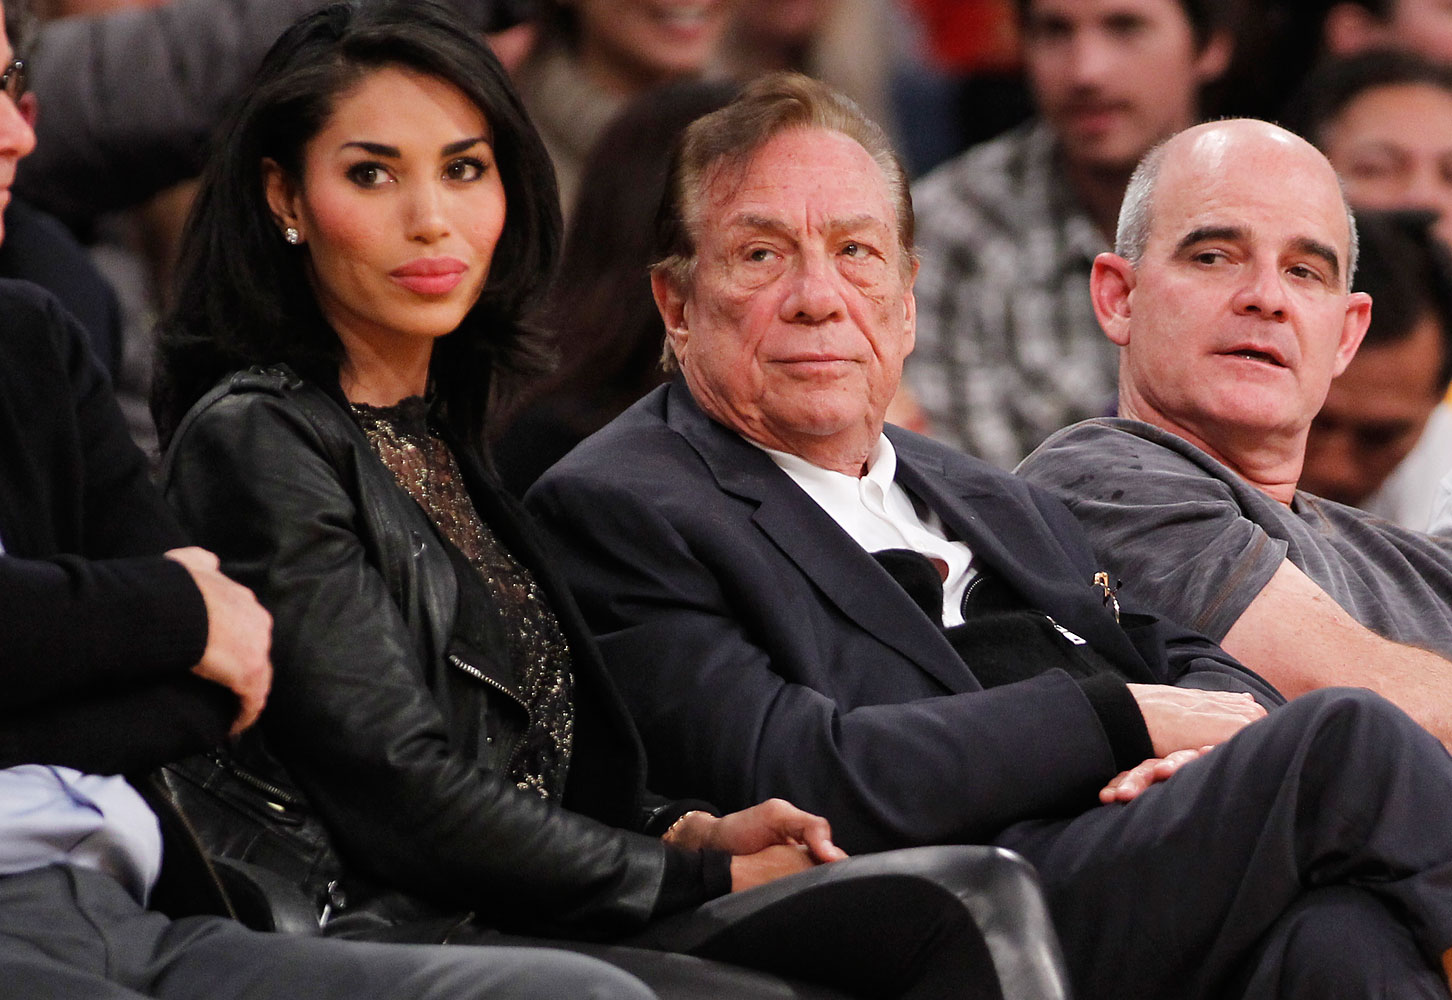 Los Angeles Clippers owner Donald Sterling, center, and V. Stiviano, left, watch the Clippers play the Los Angeles Lakers during an NBA preseason basketball game in Los Angeles, Dec. 19, 2010.